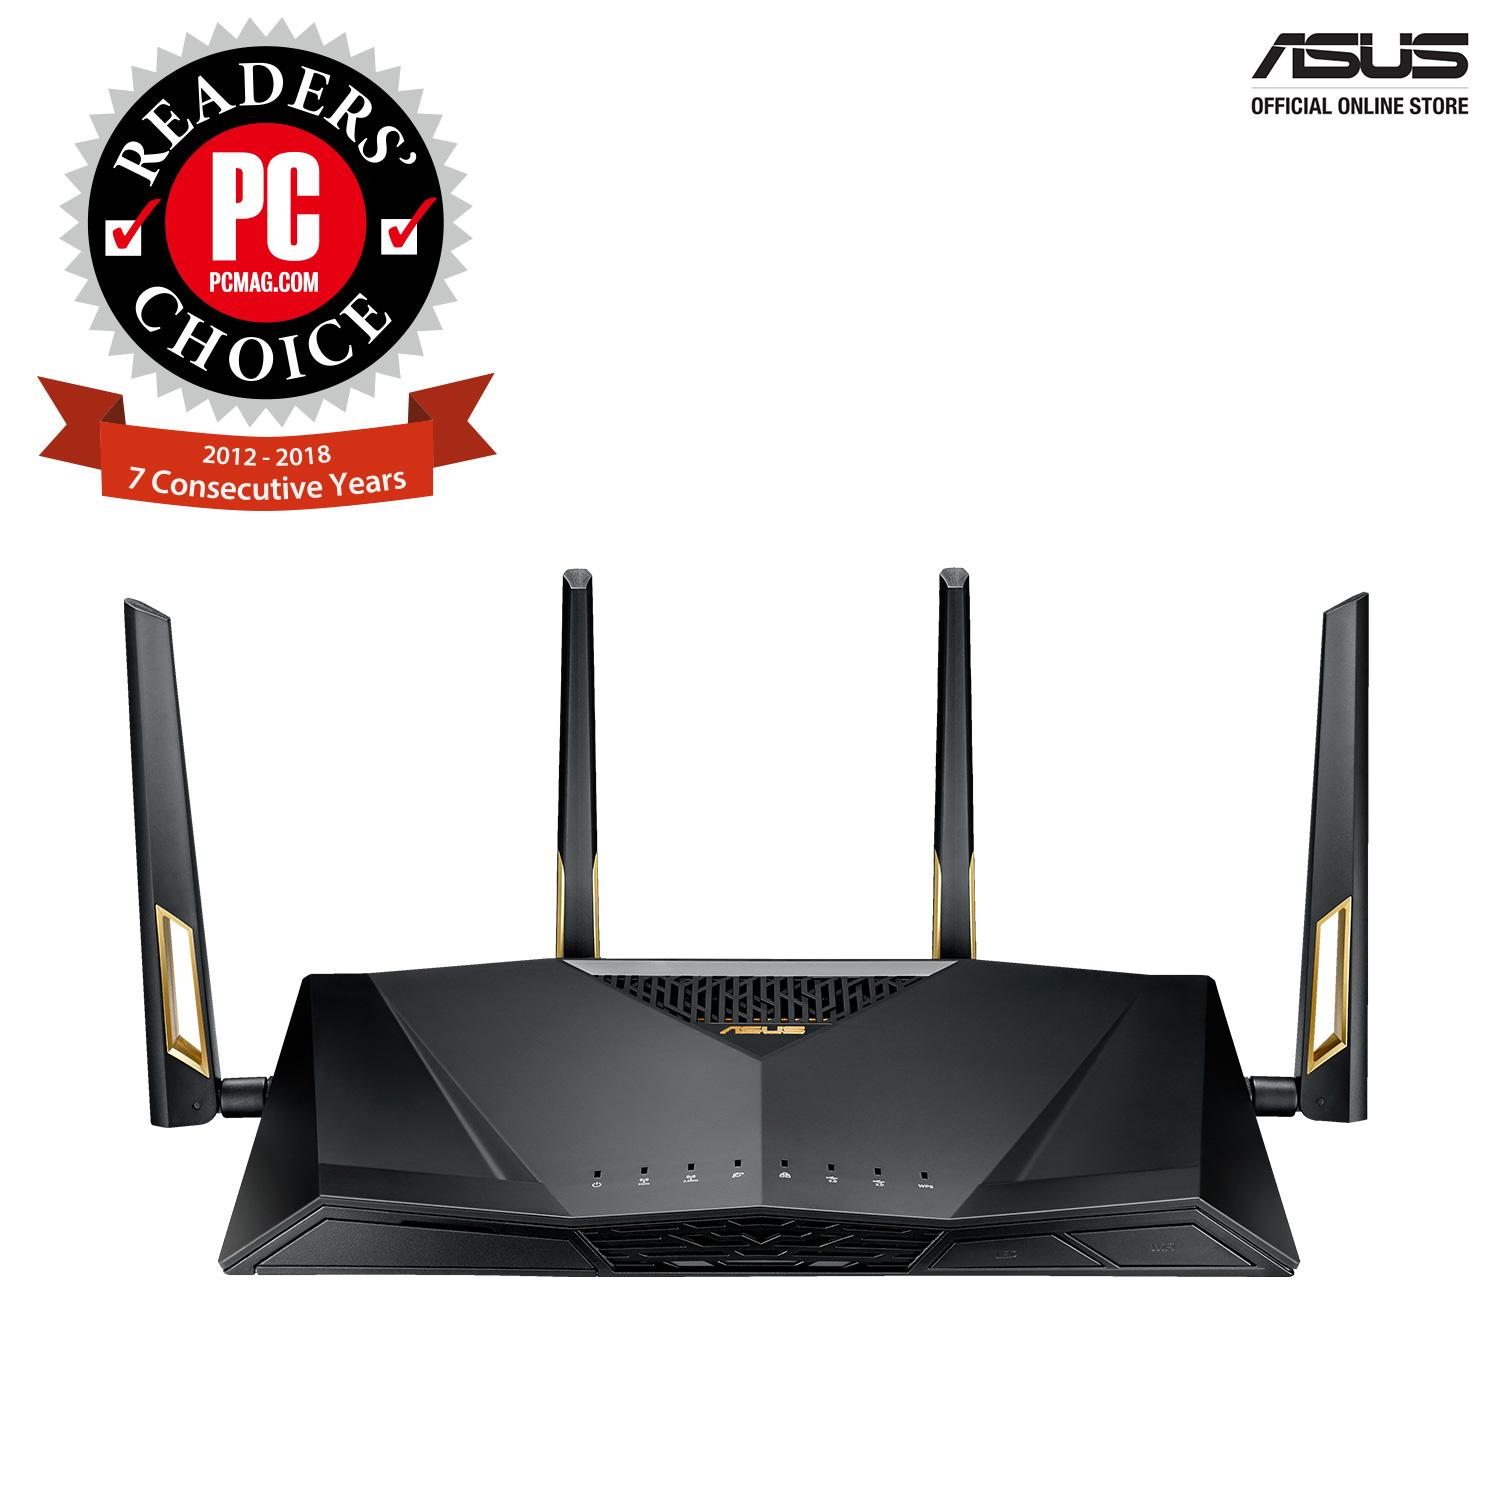 ASUS RT-AX88U AX6000 Dual Band 802 11ax Wifi 6 Router supporting MU-MIMO  and OFDMA technology, with AiProtection Pro network security powered by  Trend